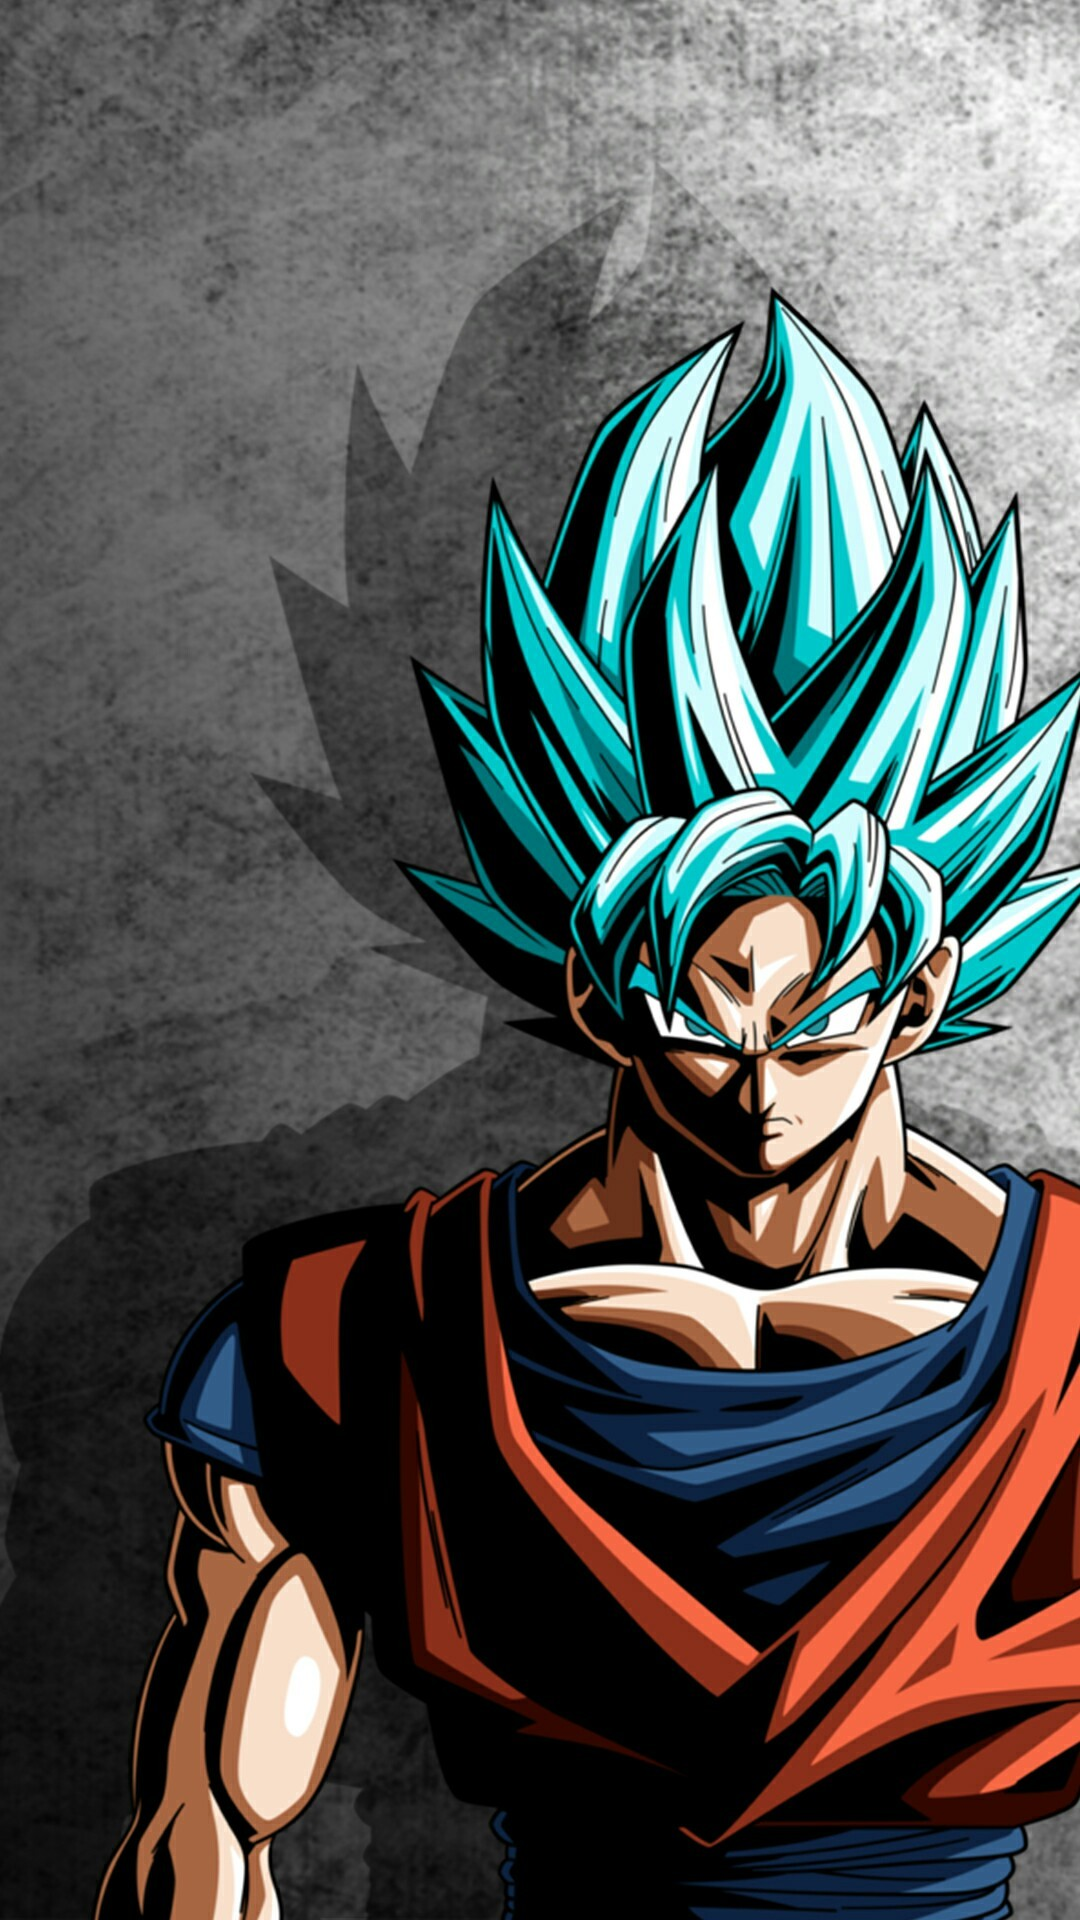 Kid goku wallpaper 57 images - Dragon ball gt goku wallpaper ...